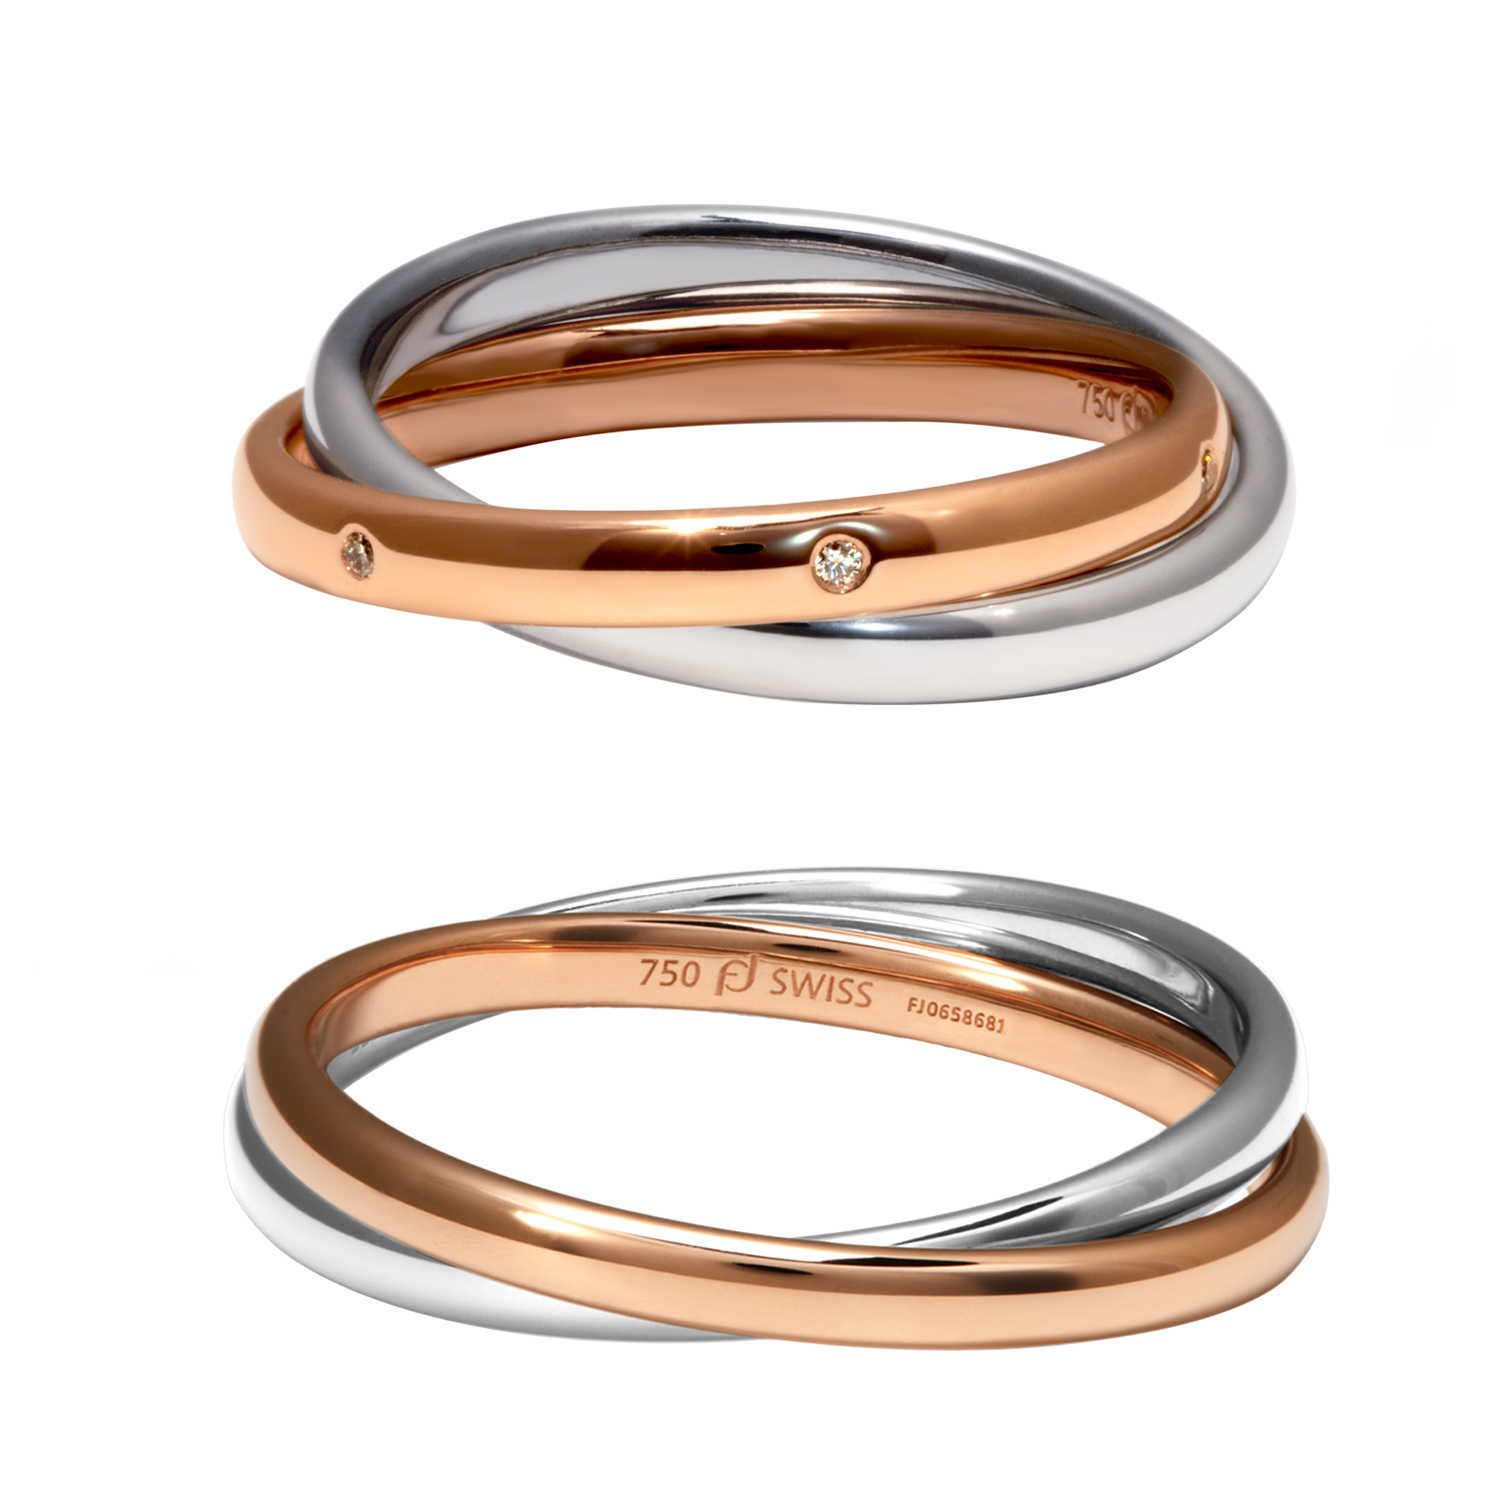 wedding bands, wedding rings, jewellery, jewelry, gold, platinum, diamonds, palladium, carbon